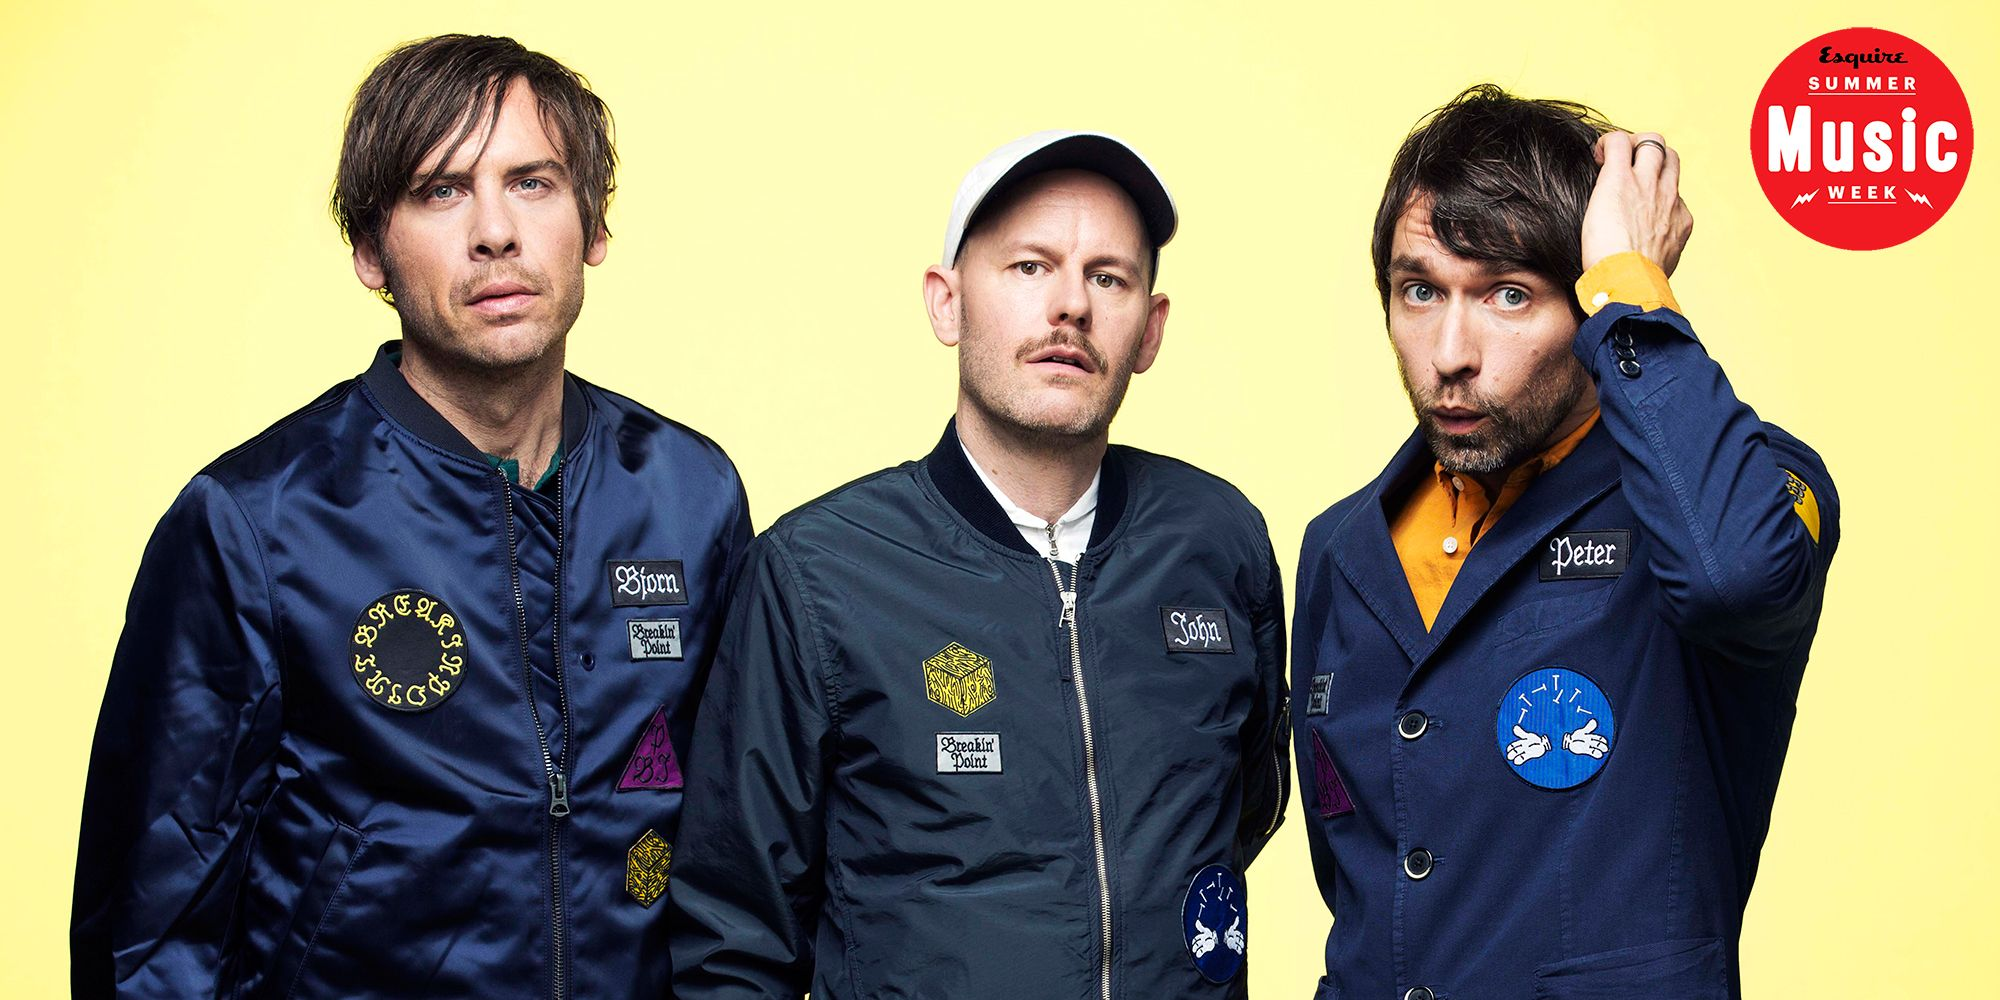 Peter bjorn and john breakin point